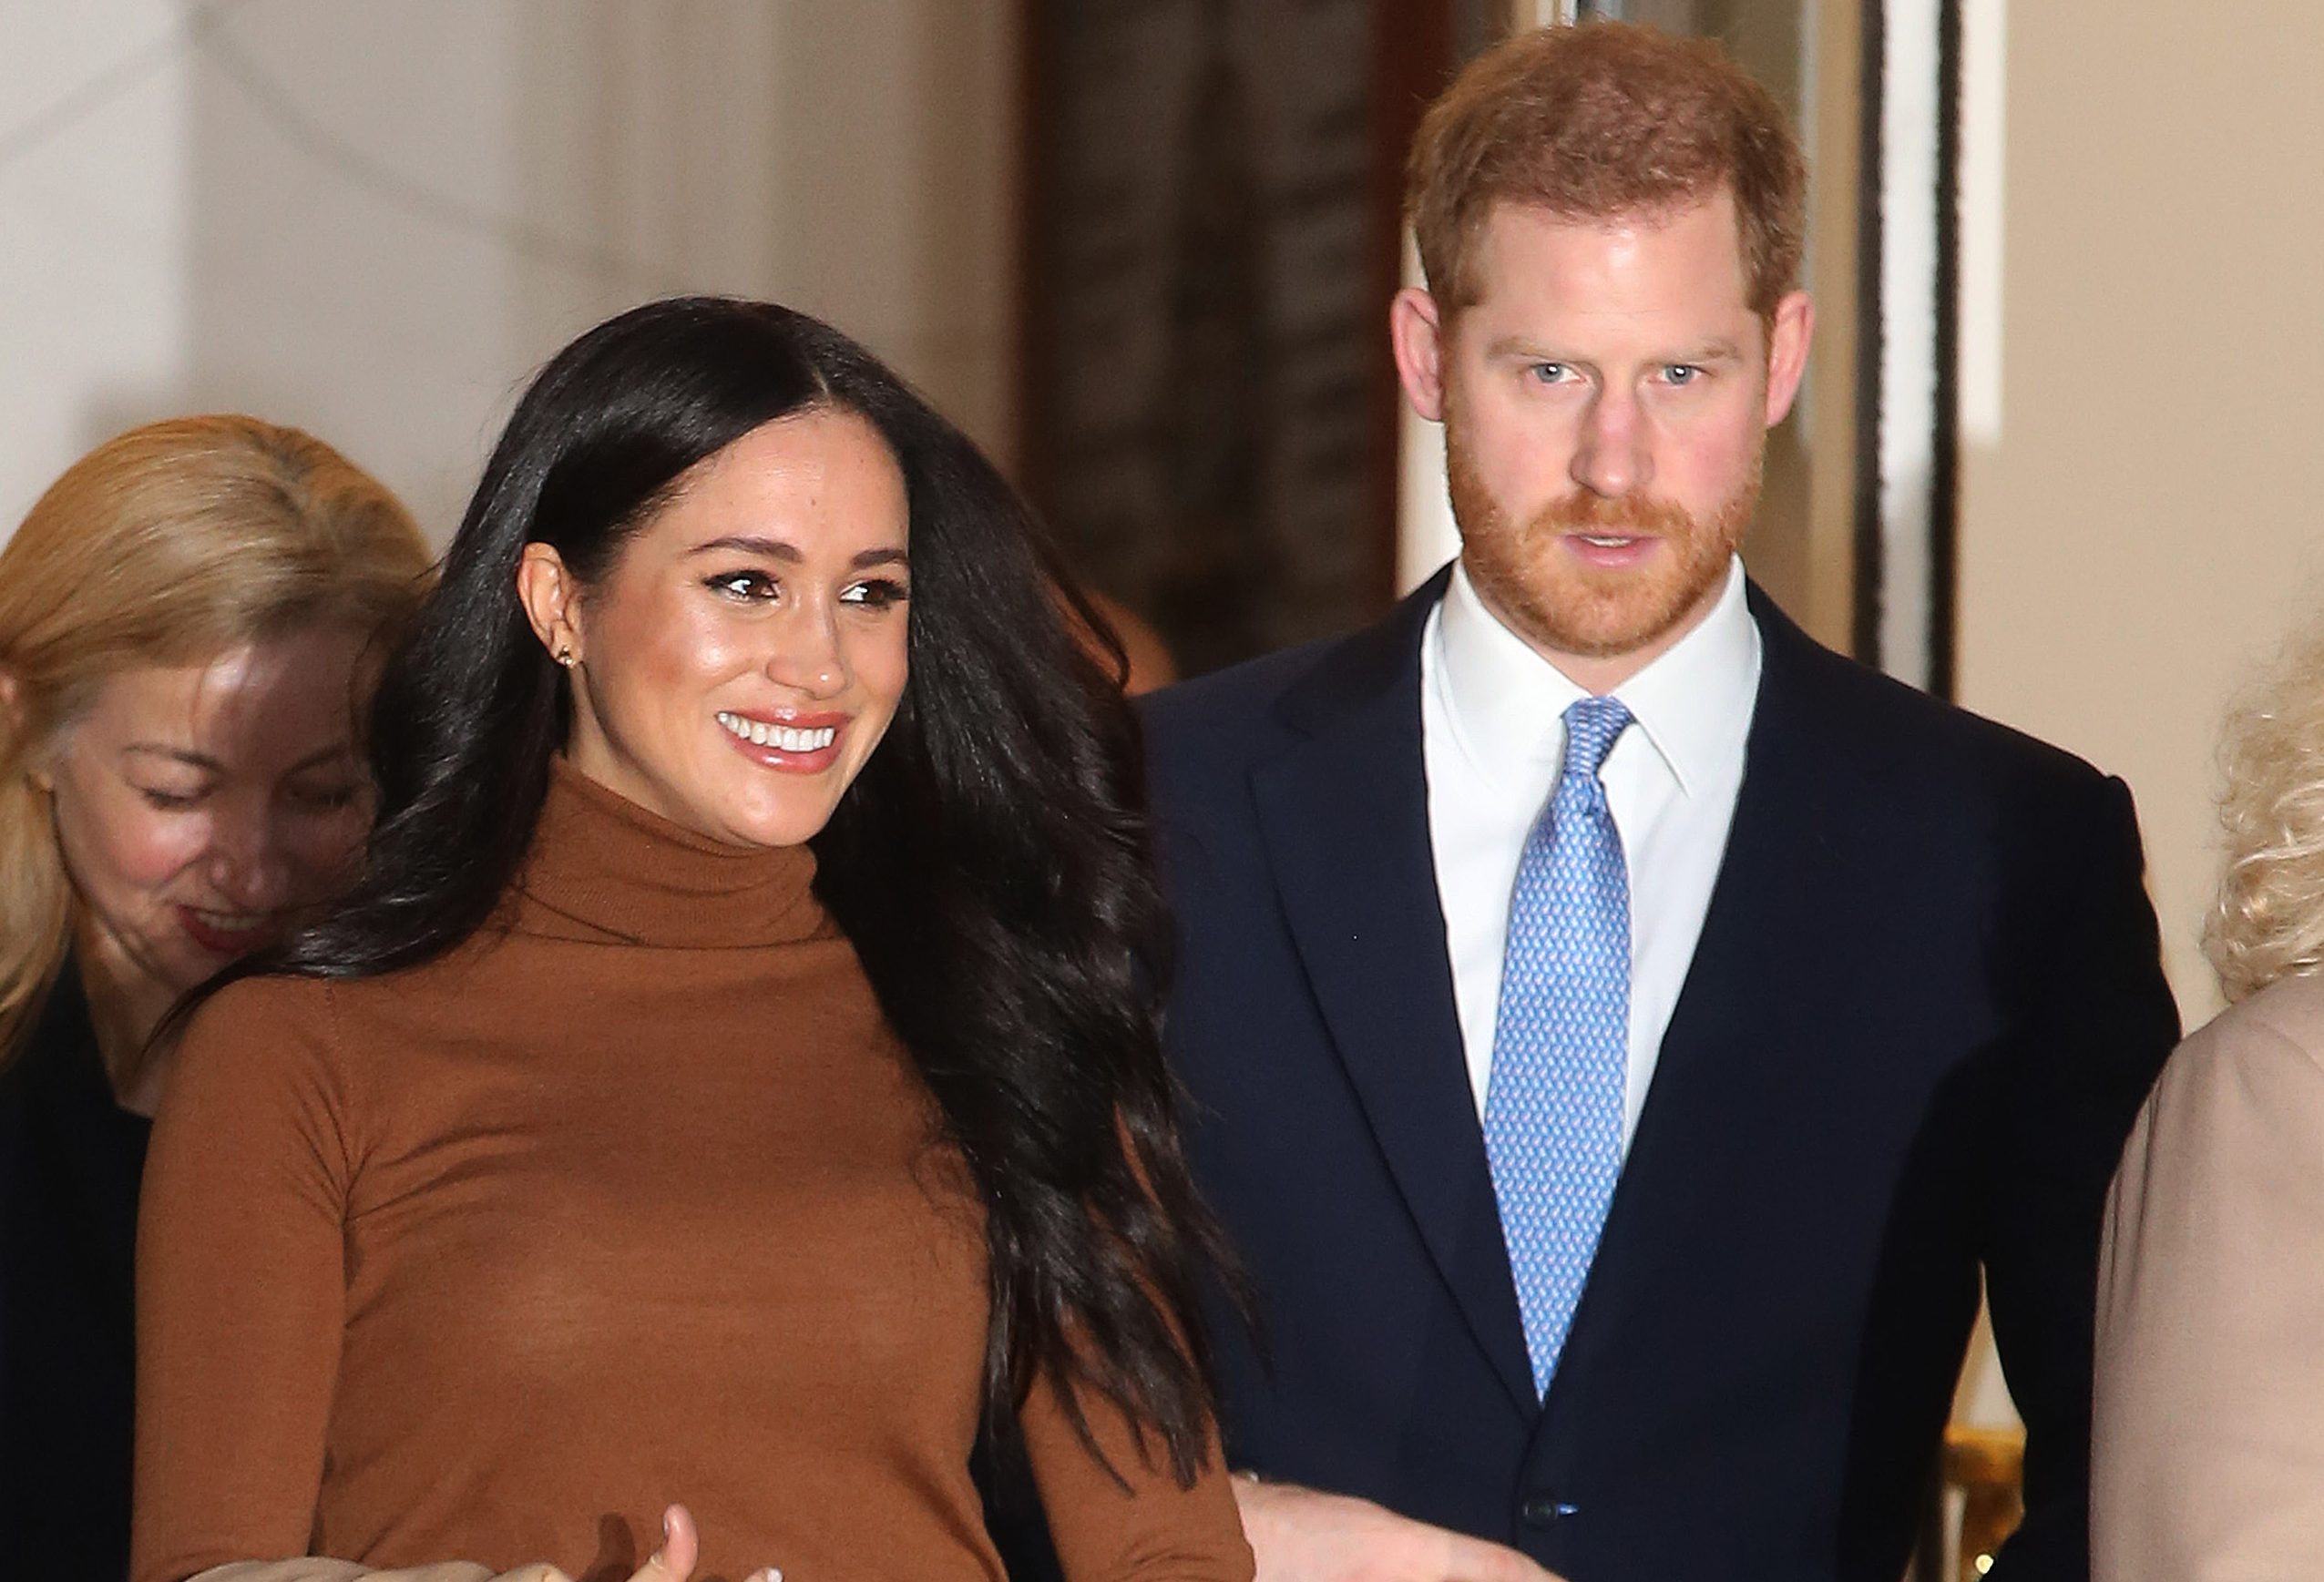 Meghan and Harry share first post since stepping back from royal family